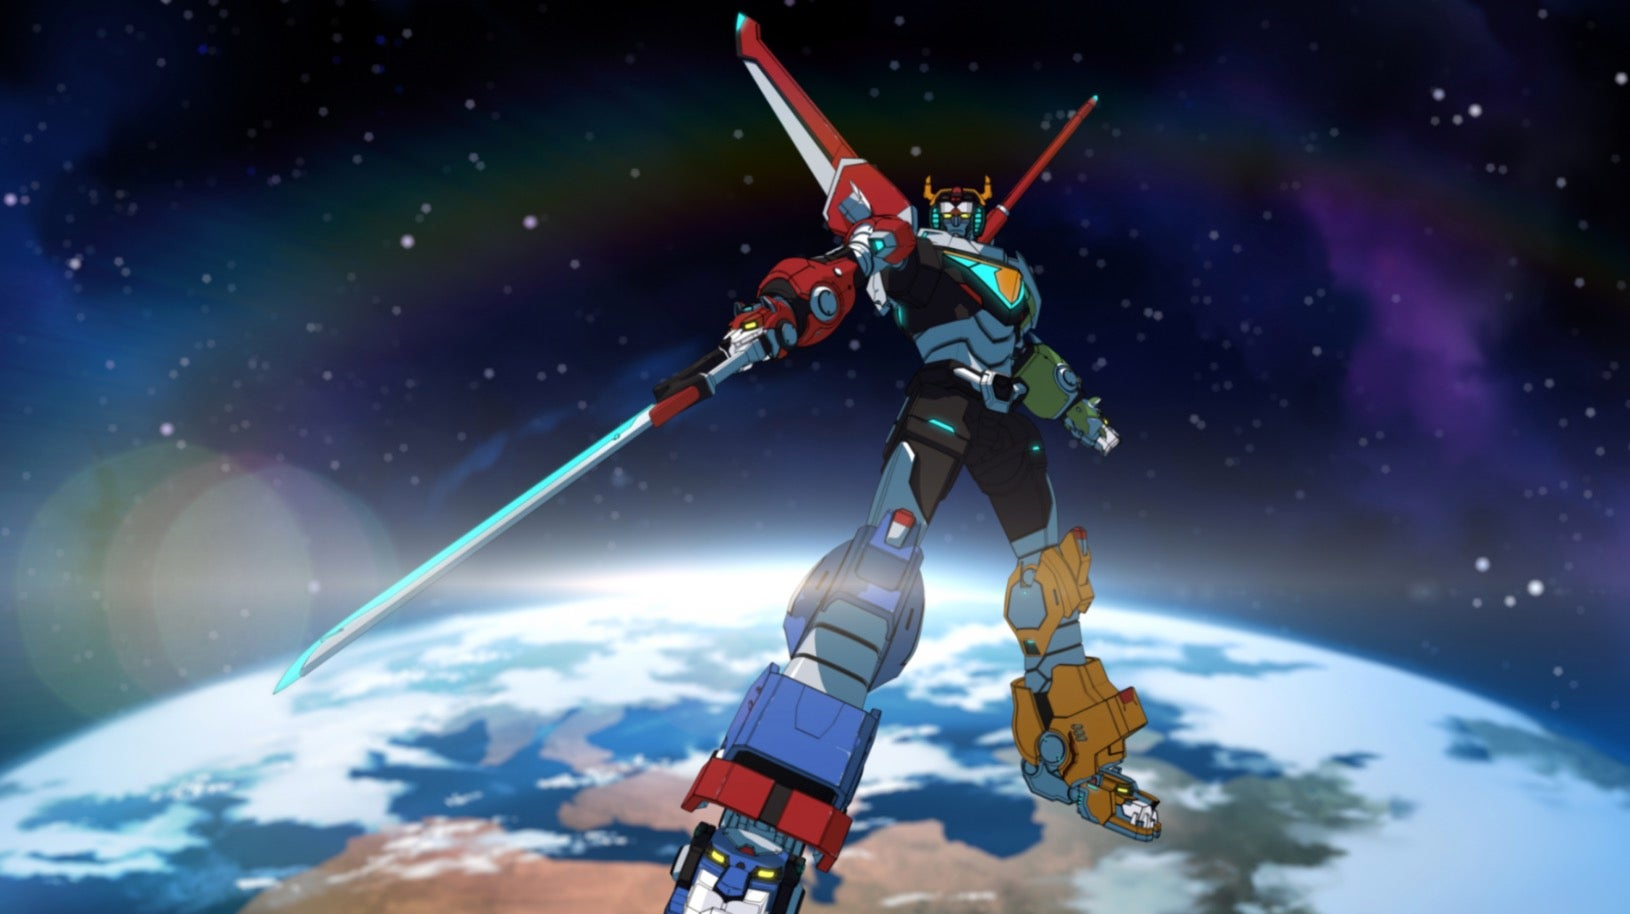 We May Actually See A Live-Action Voltron Movie In Our Lifetime